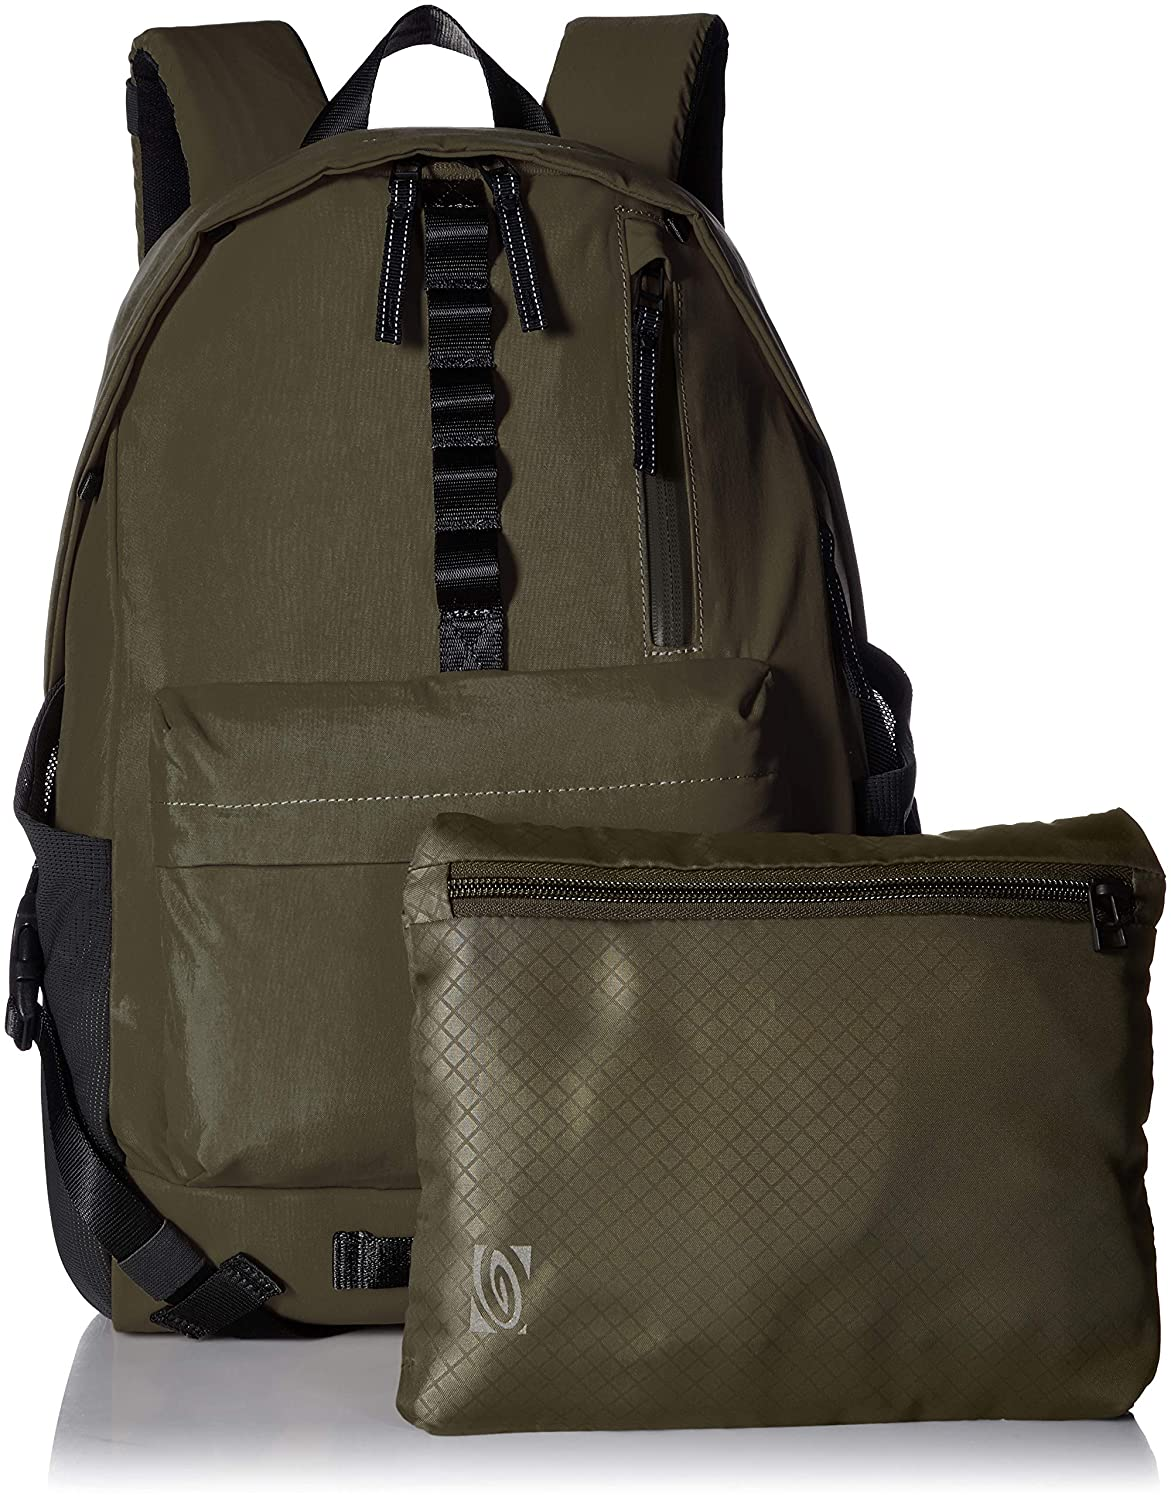 Amazon.com: Timbuk2 Collective Pack, OS: Sports & Outdoors